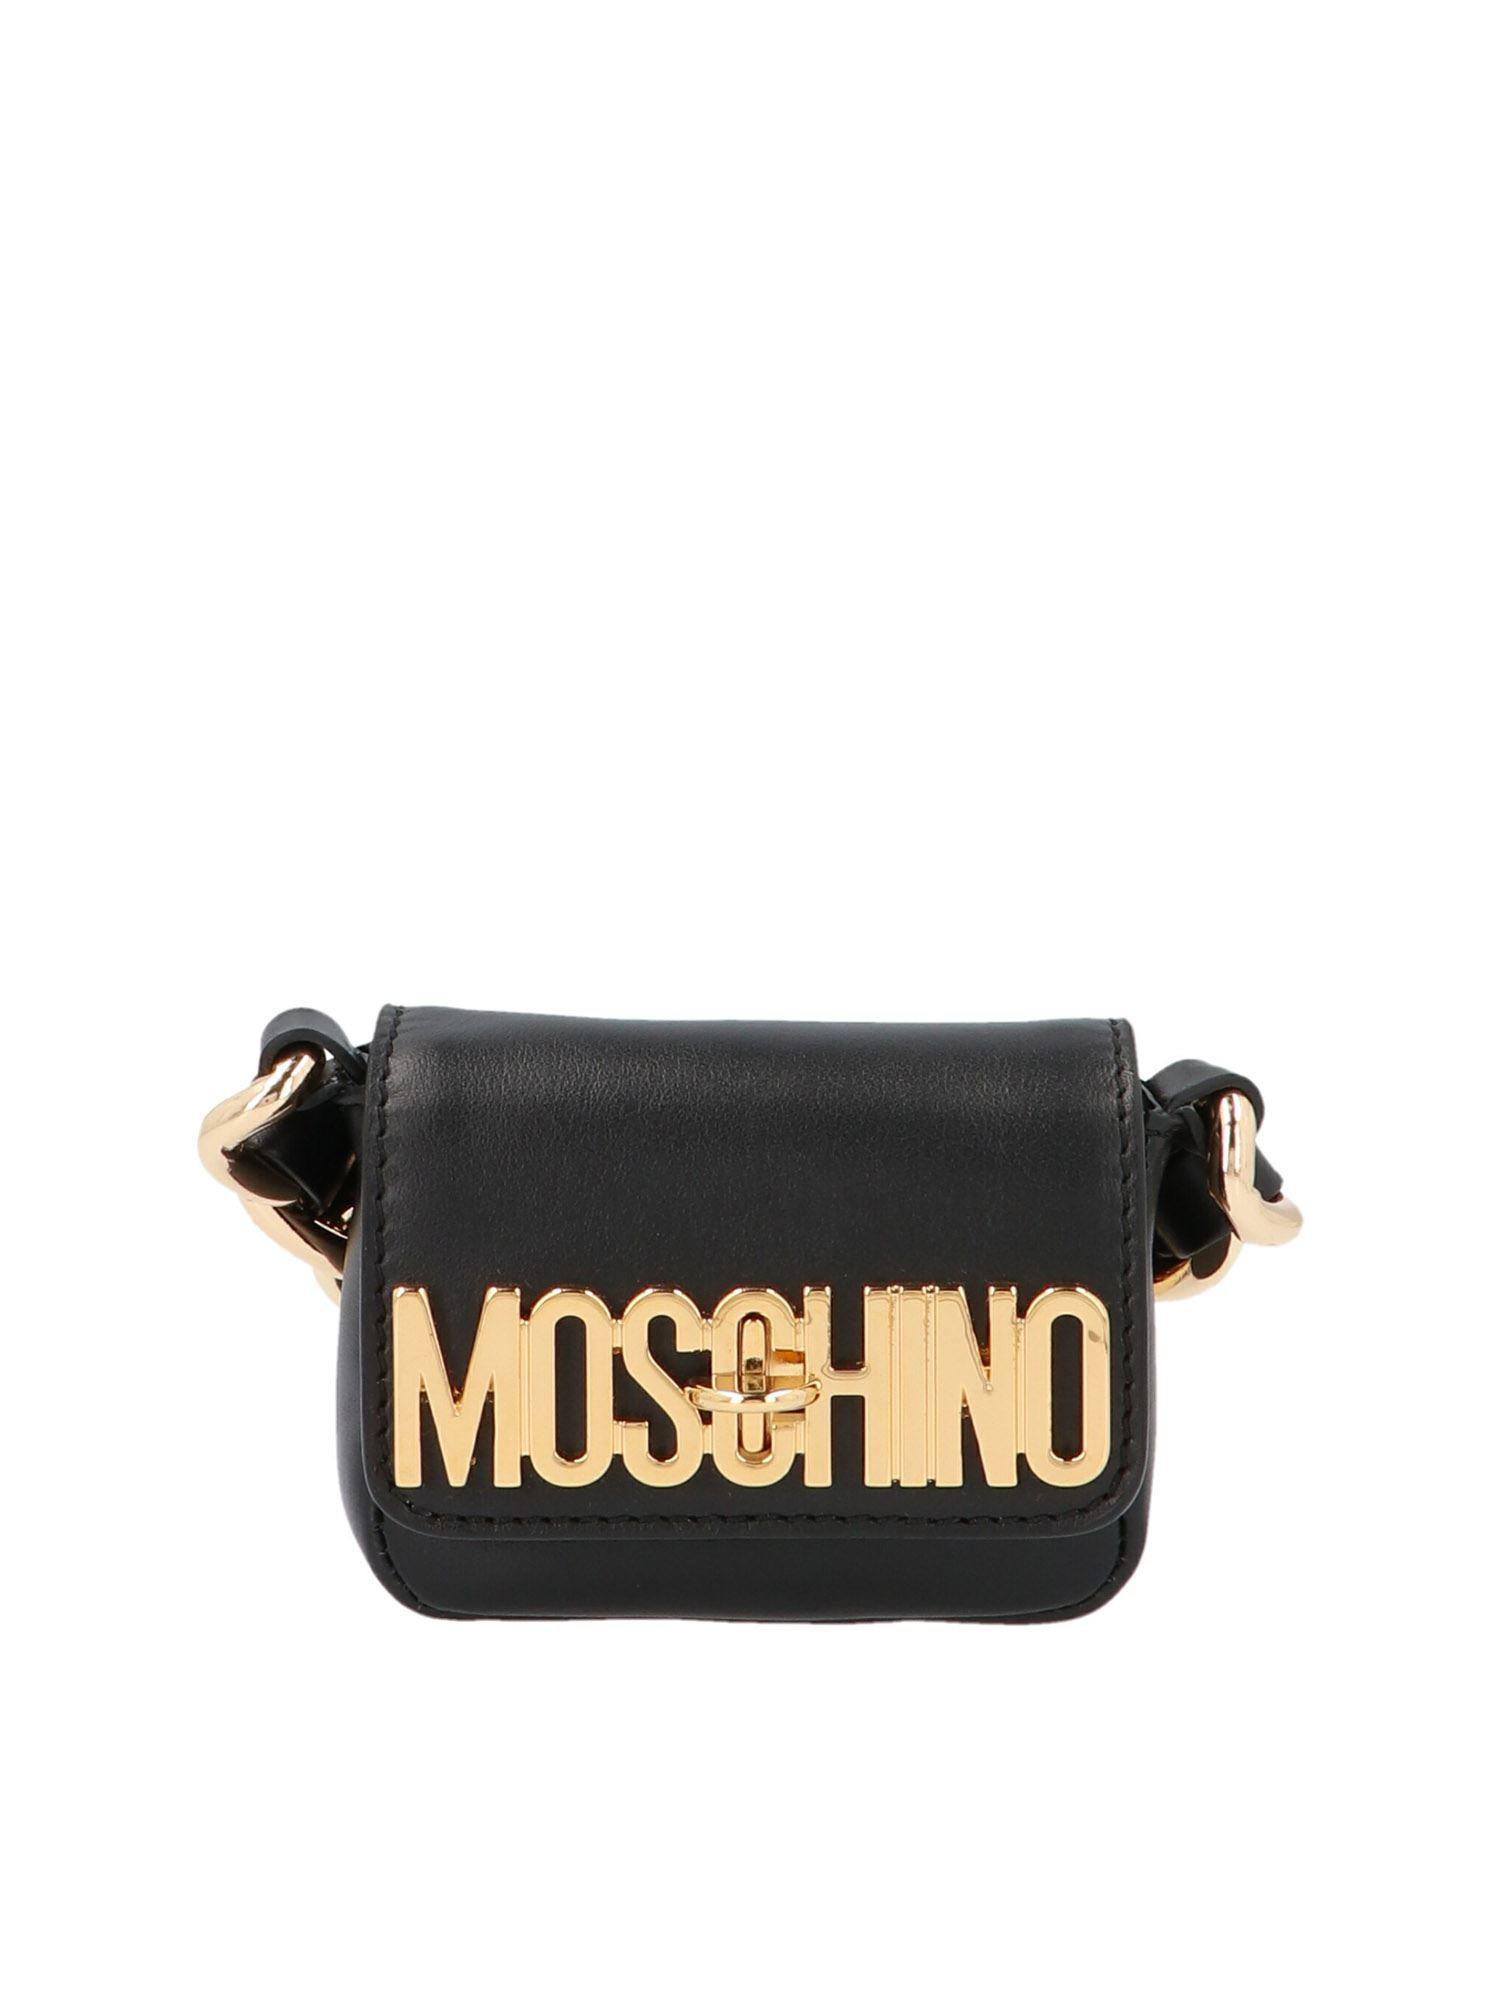 Moschino MINI METALLIC LOGO BAG IN BLACK AND GOLD